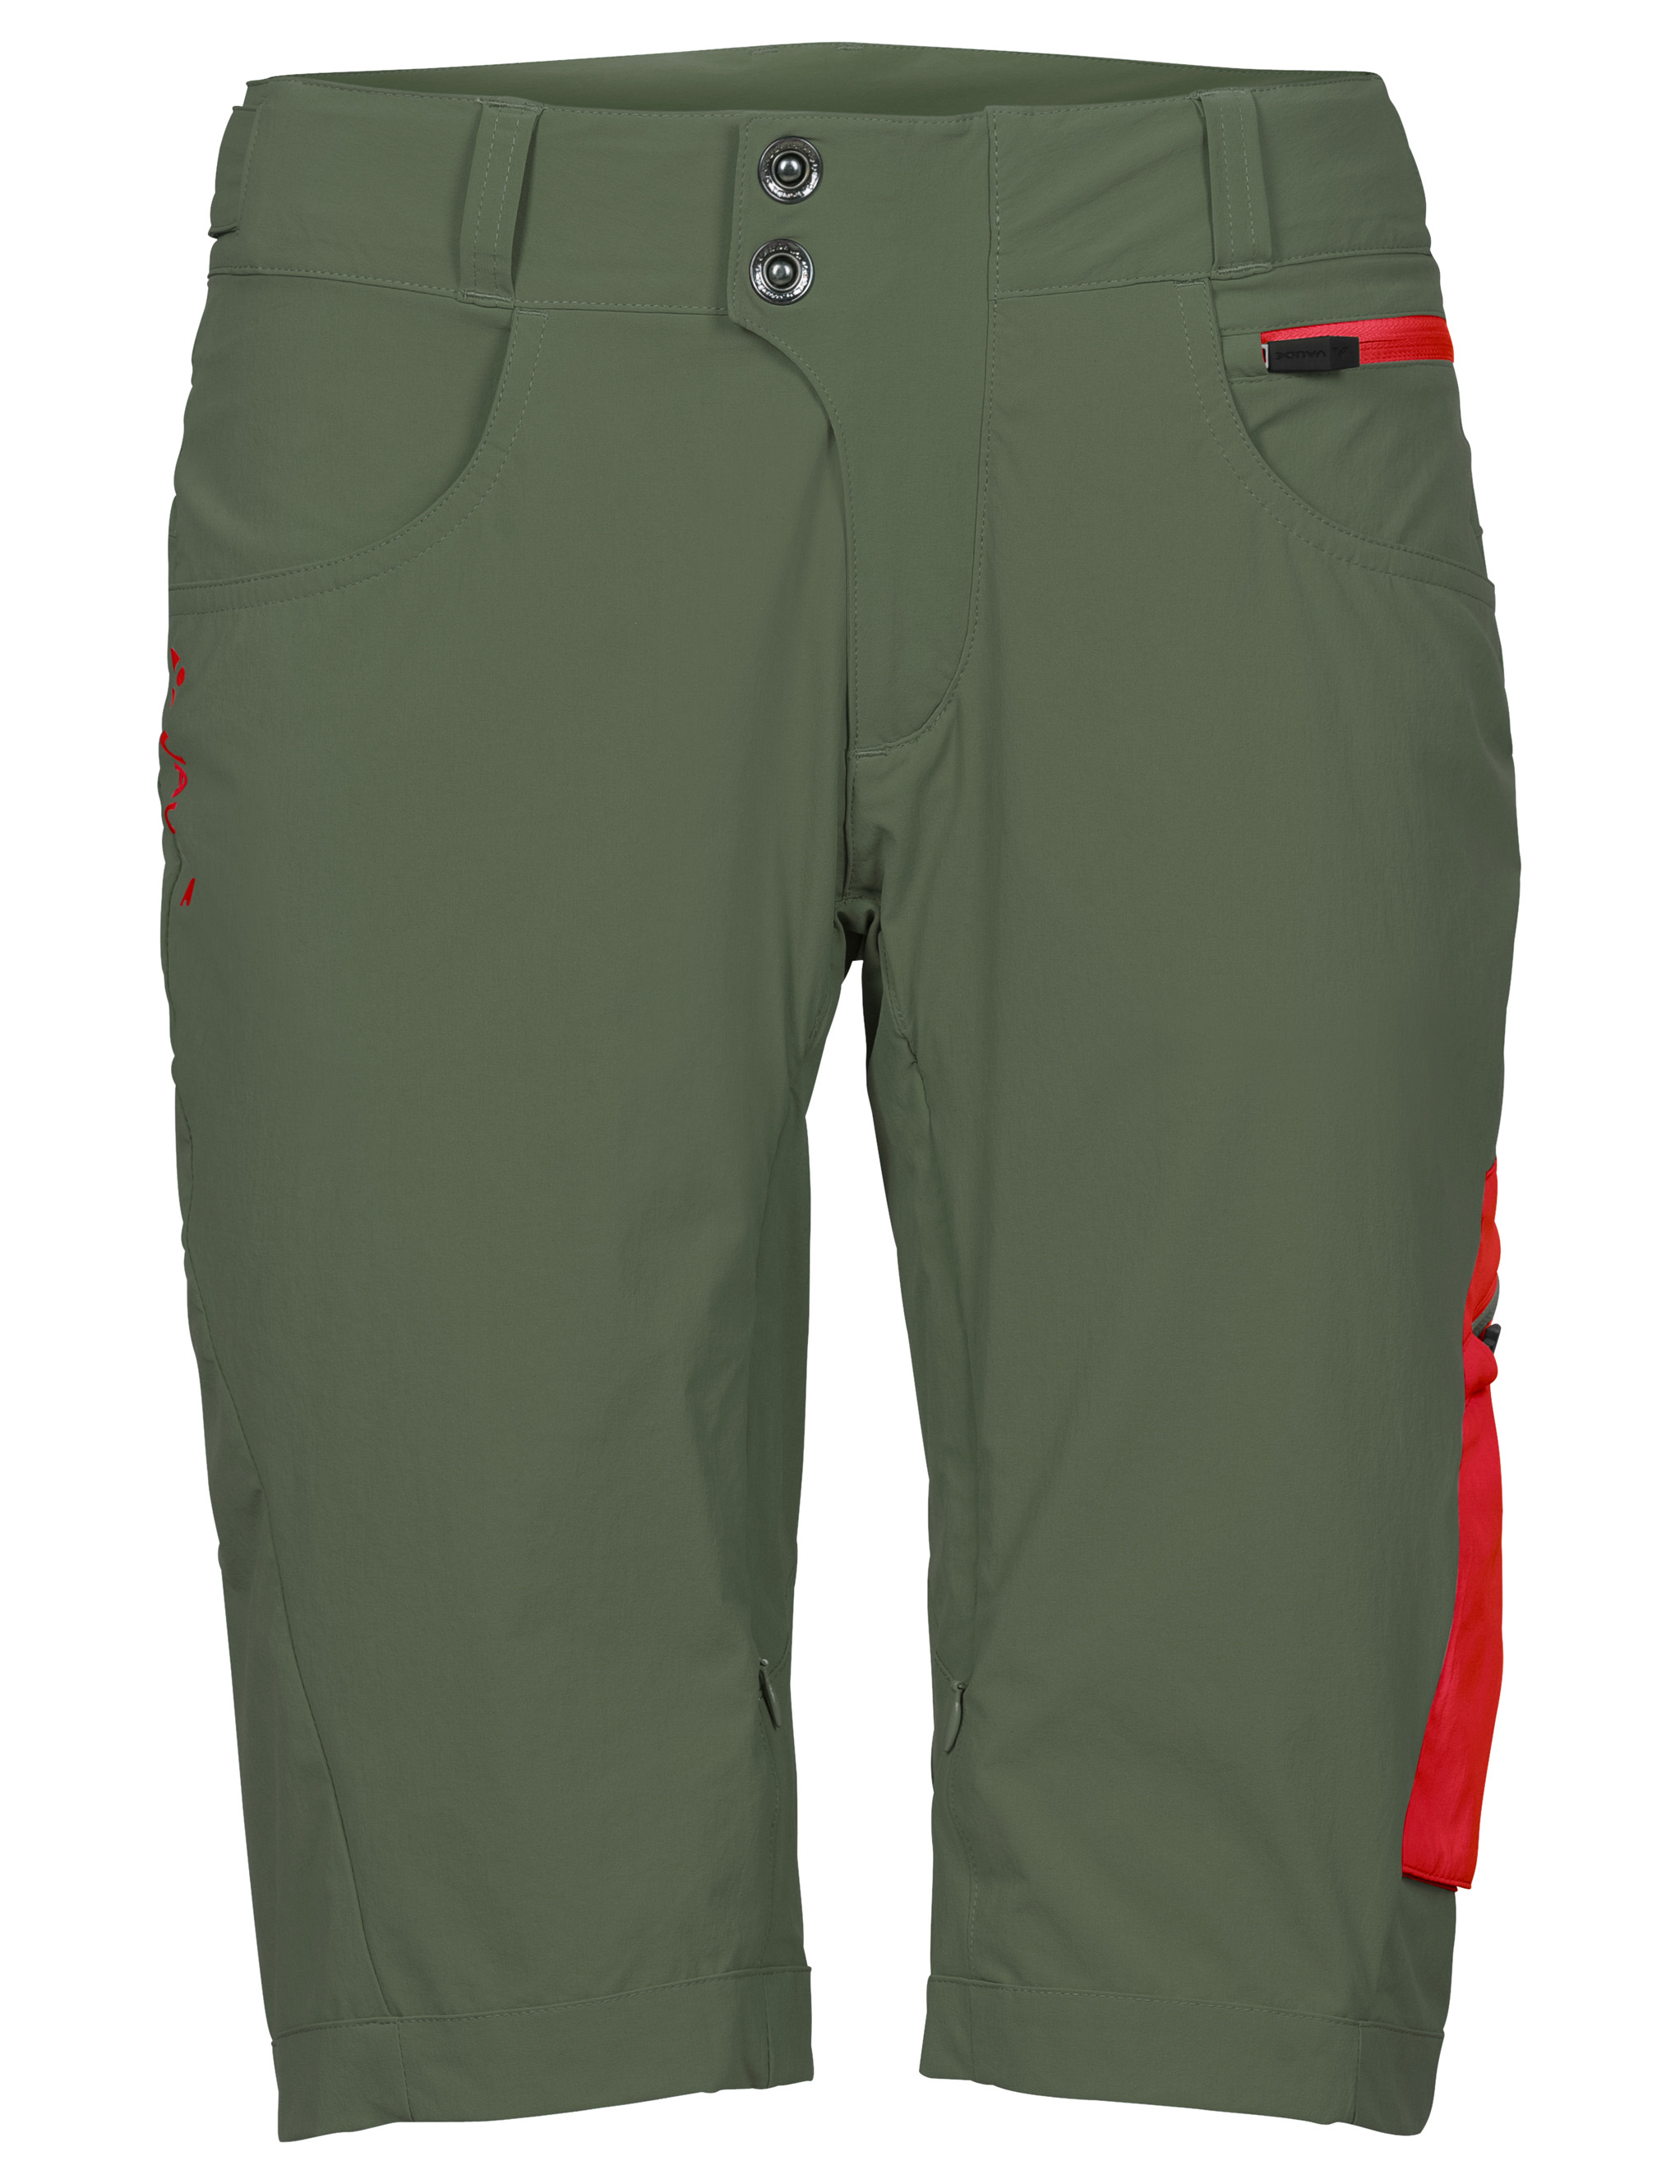 VAUDE Women´s Altissimo Shorts cedar wood Größe 36 - schneider-sports